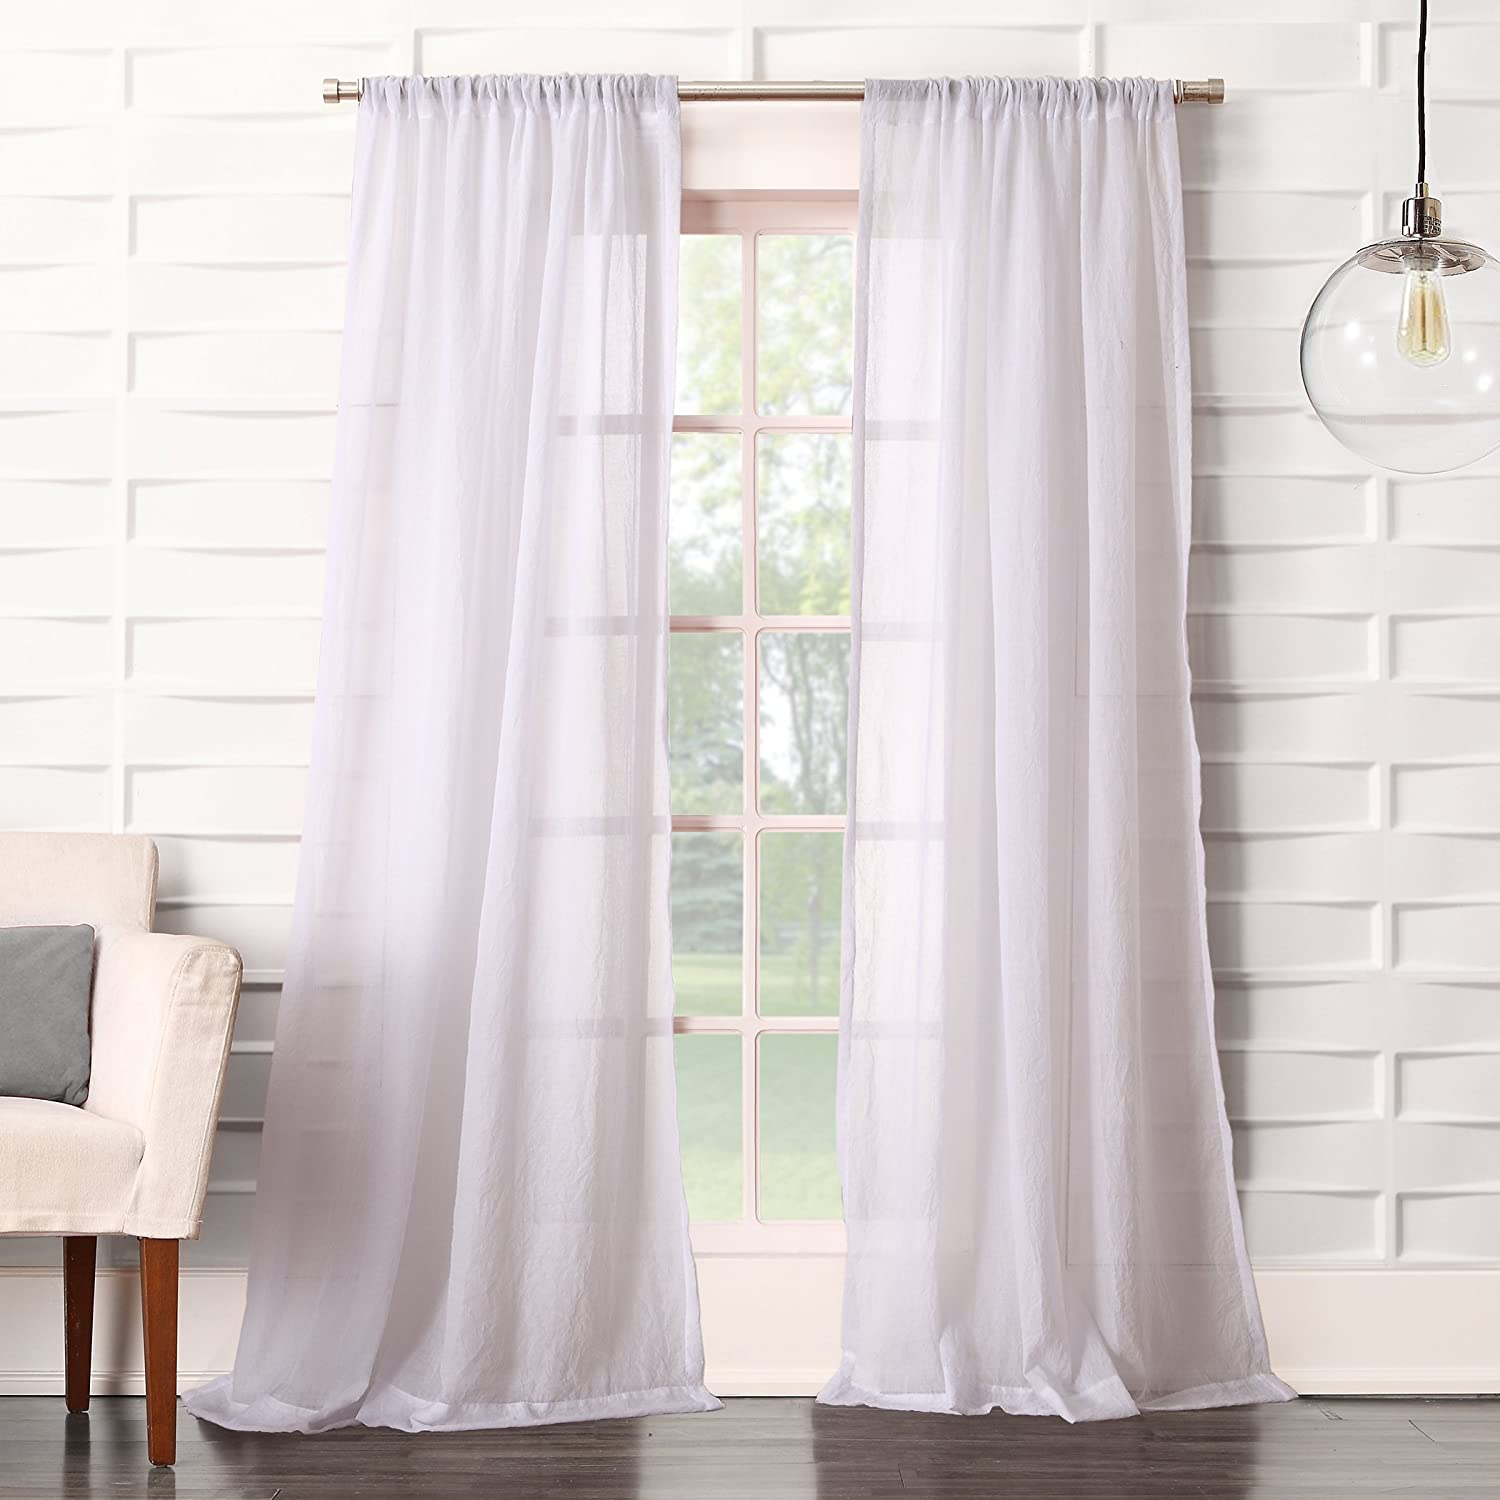 Amazon Com No 918 44078 Tayla Crushed Texture Semi Sheer Rod Pocket Curtain Panel 50 X 84 White Home Kitchen